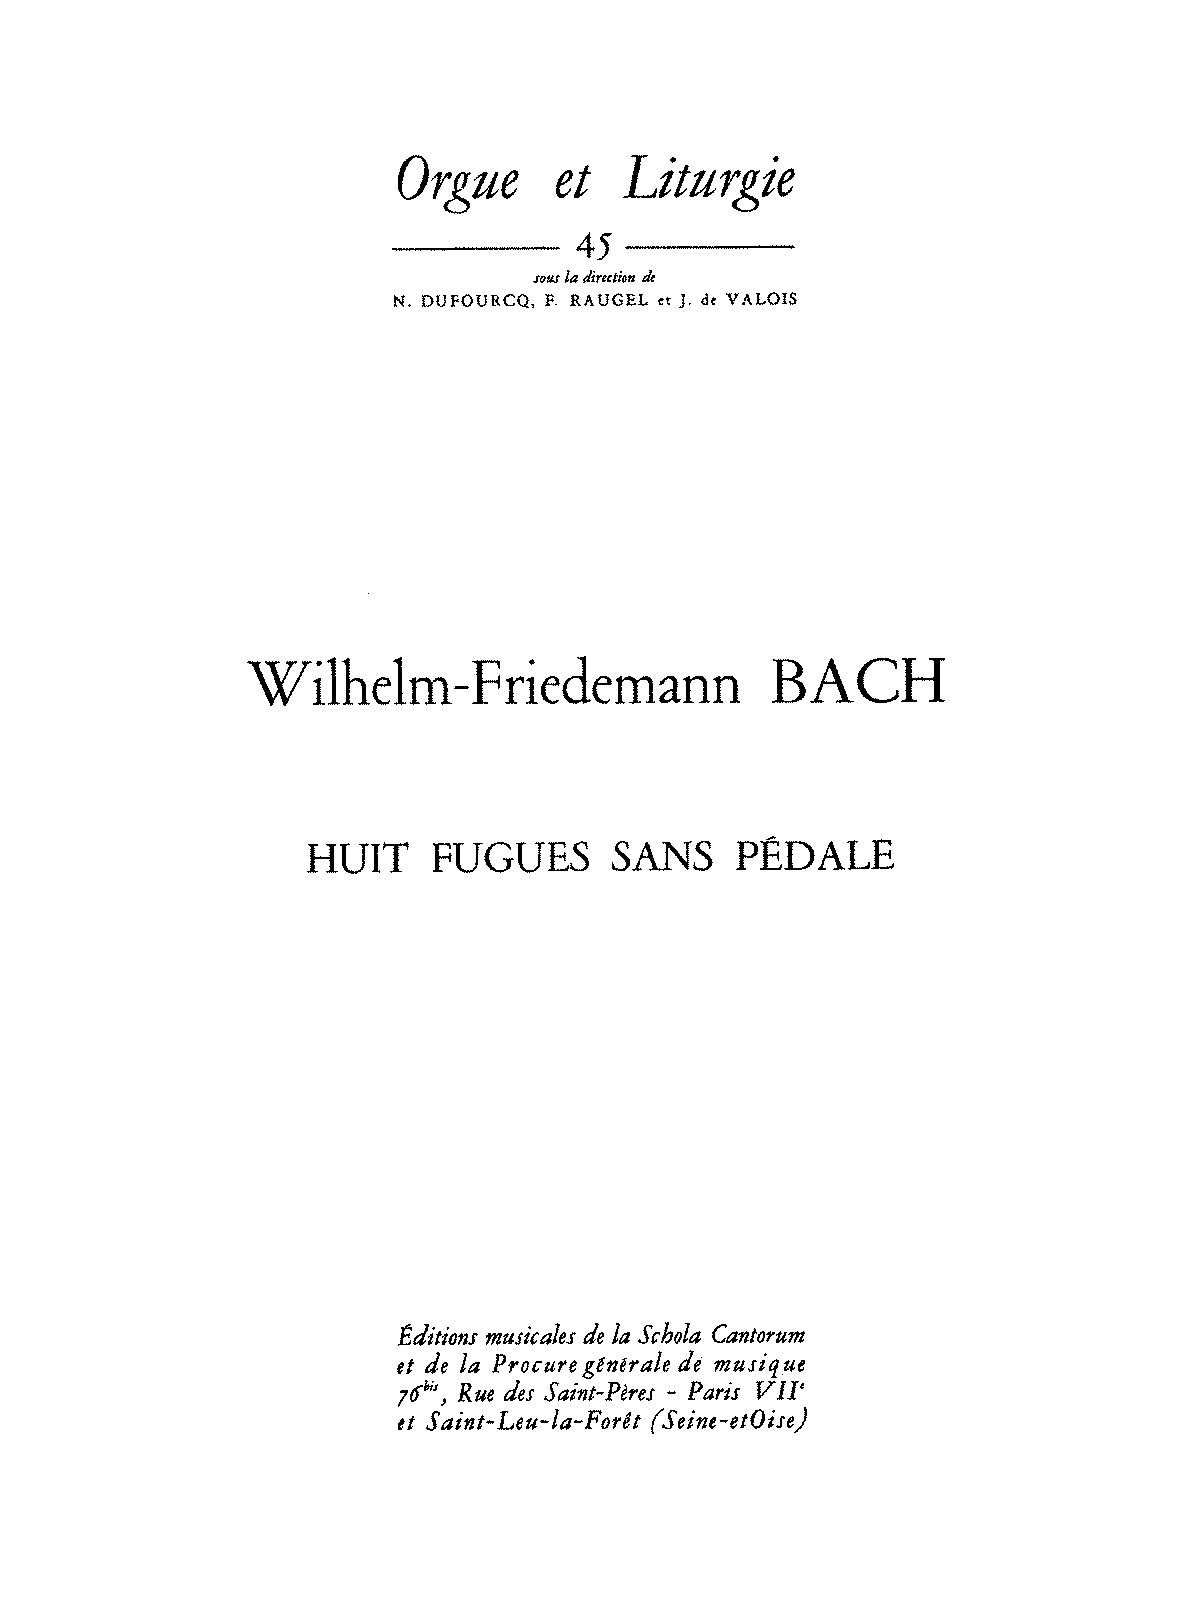 Bach WF Eight Fugues without Pedal.pdf